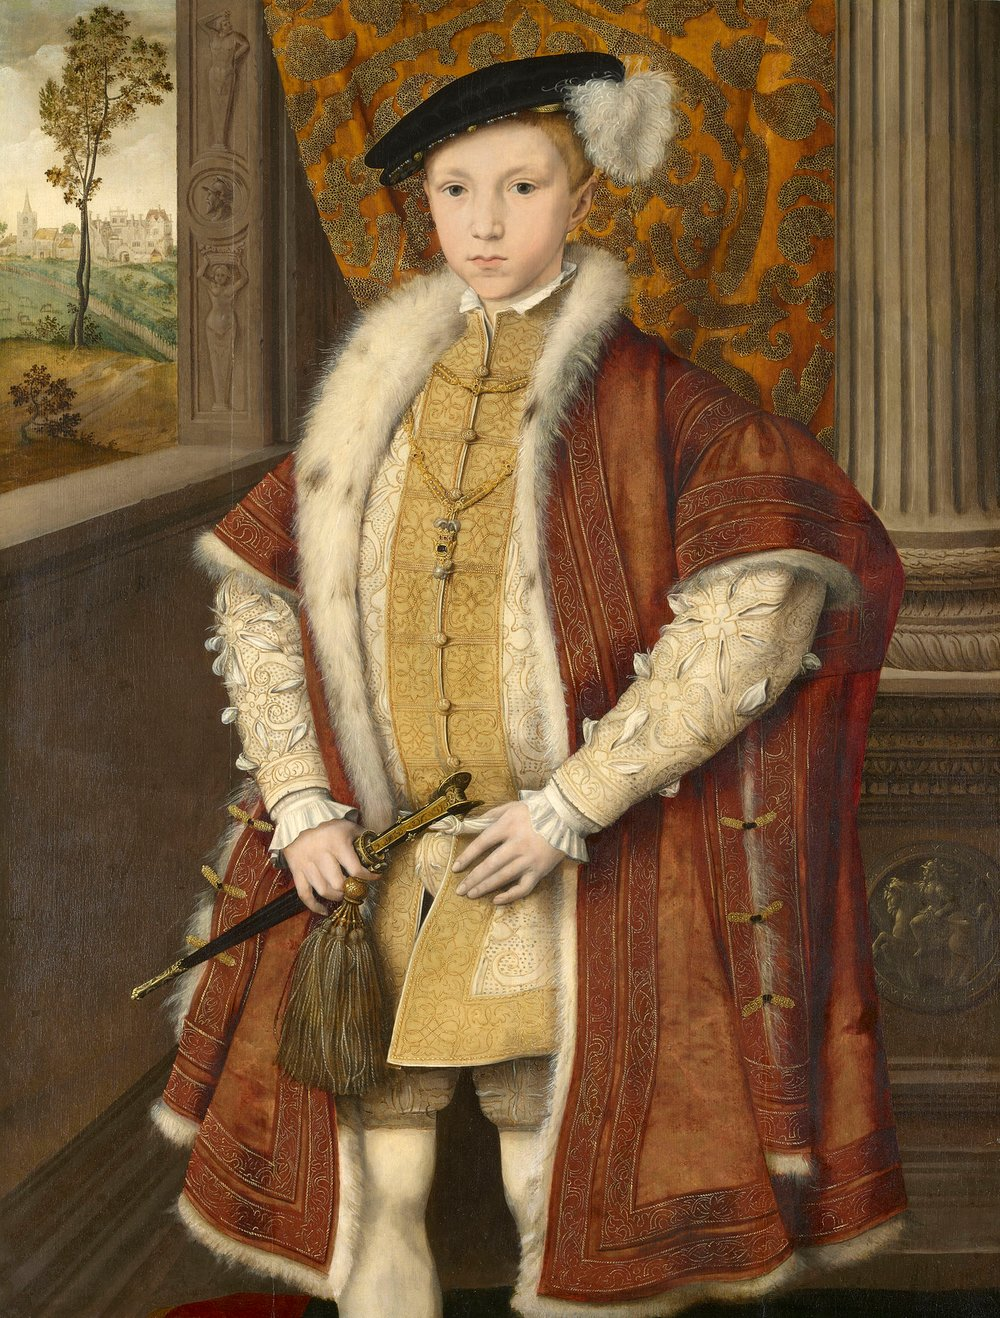 Painting showing Edward VI standing by a window